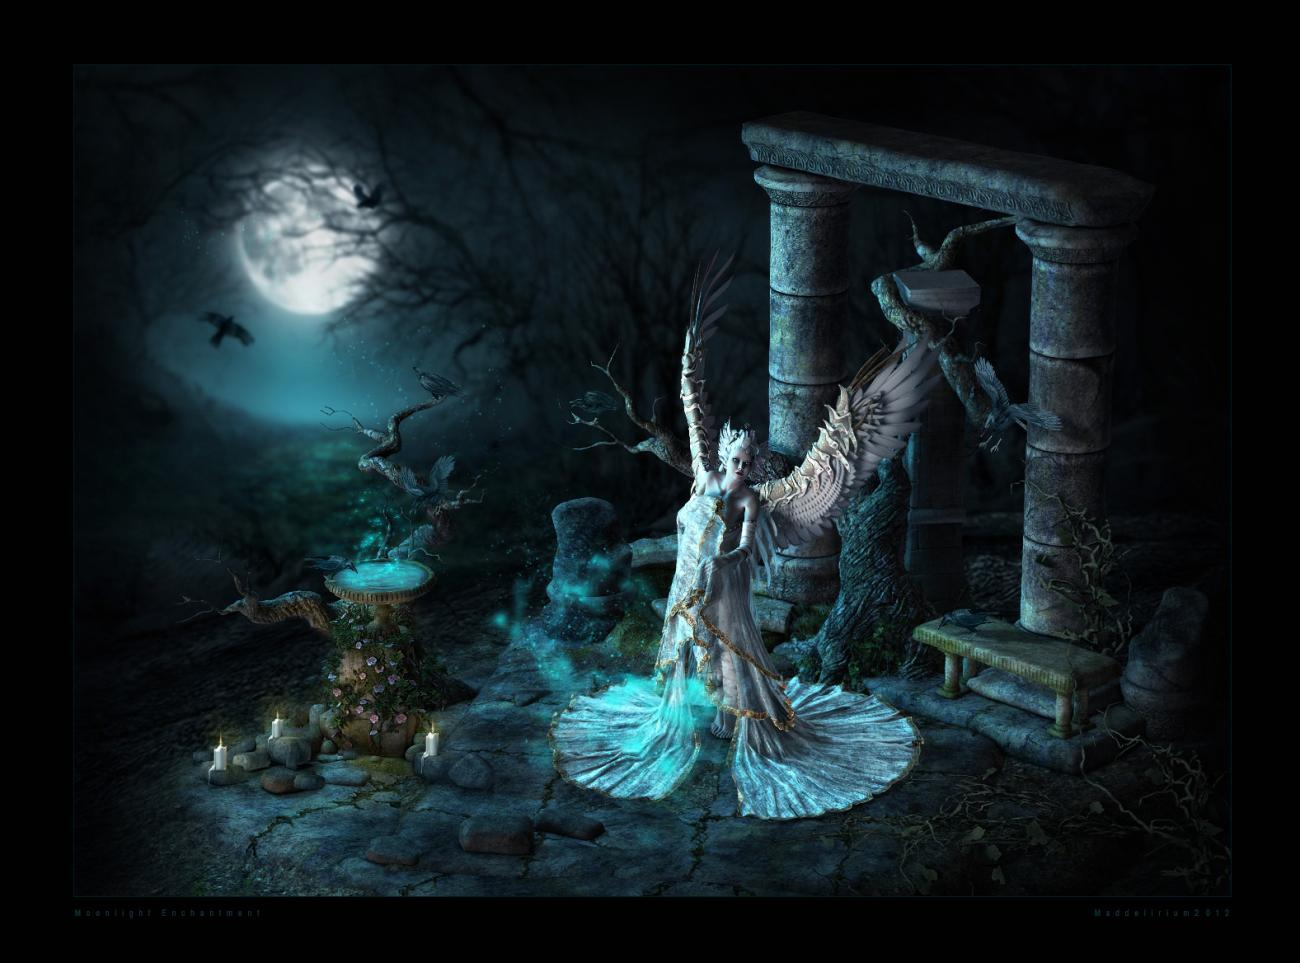 Moonlight Enchantment for ilona